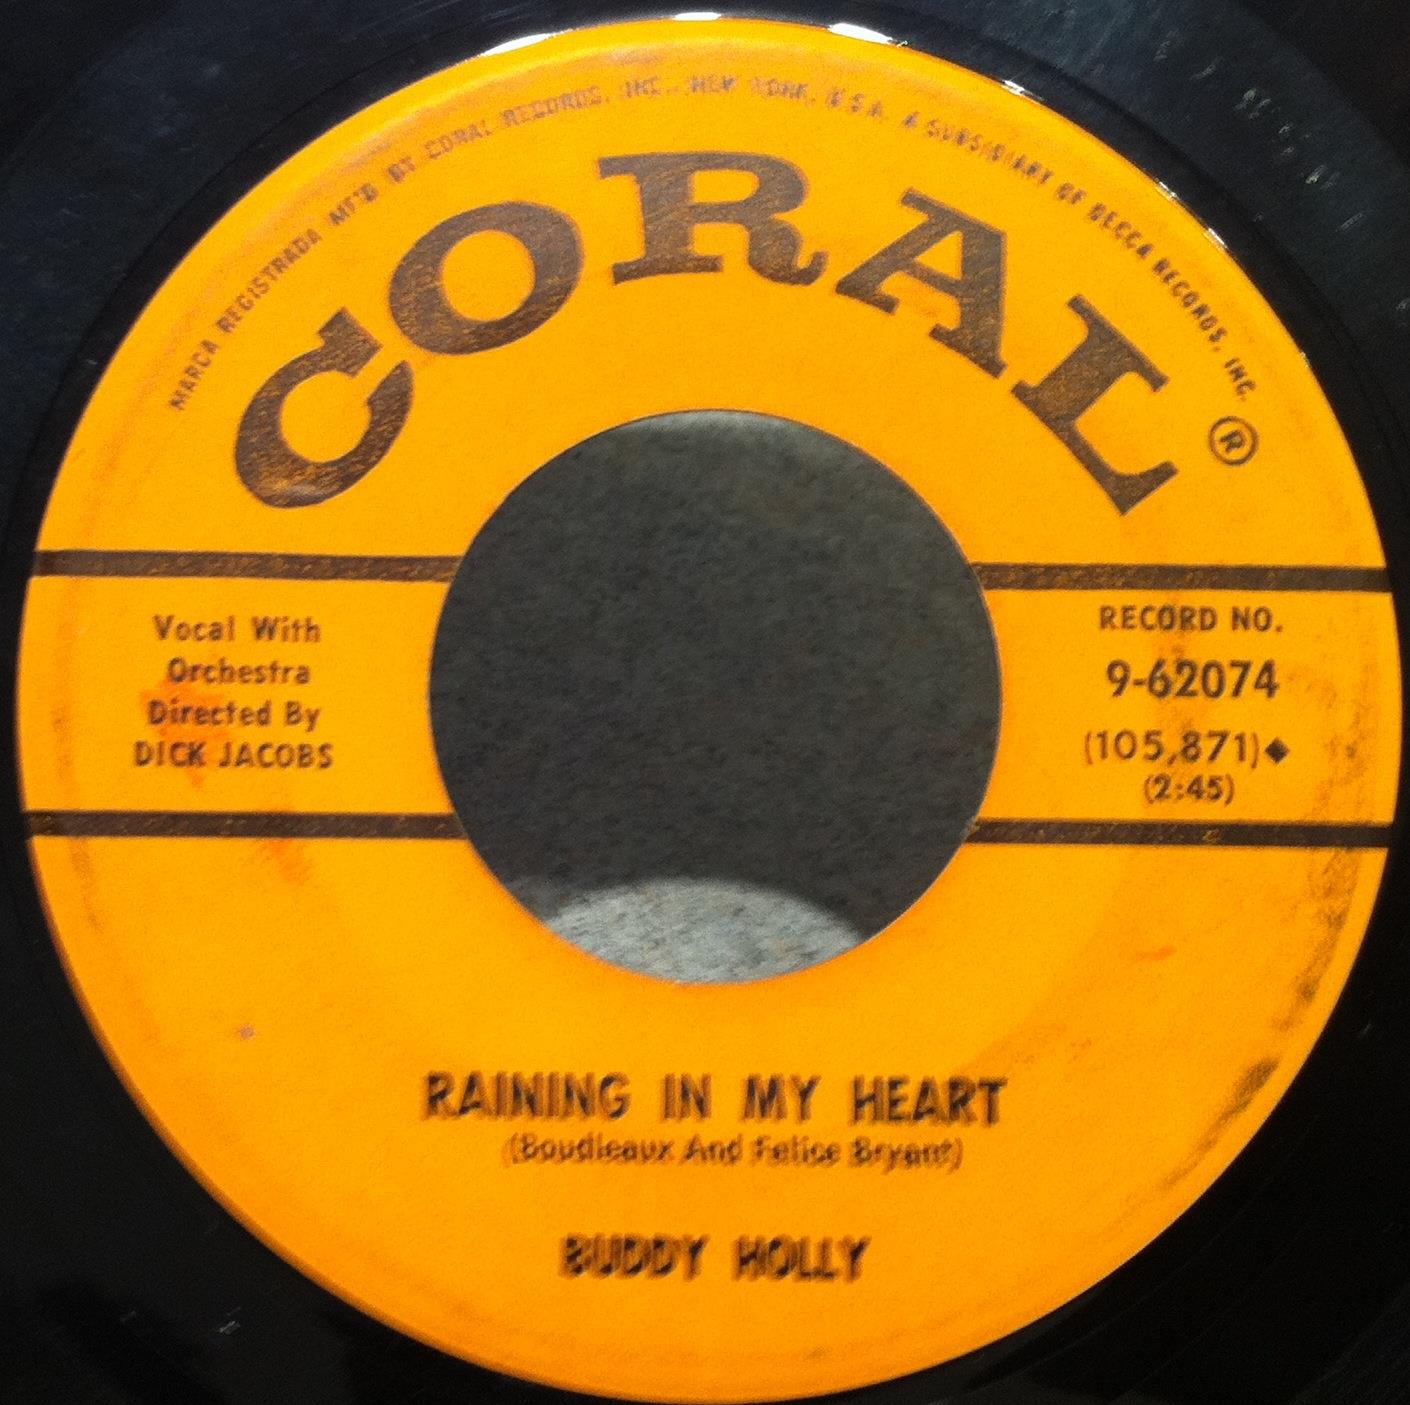 It Doesn't Matter Anymore - Raining In My Heart - BUDDY HOLLY